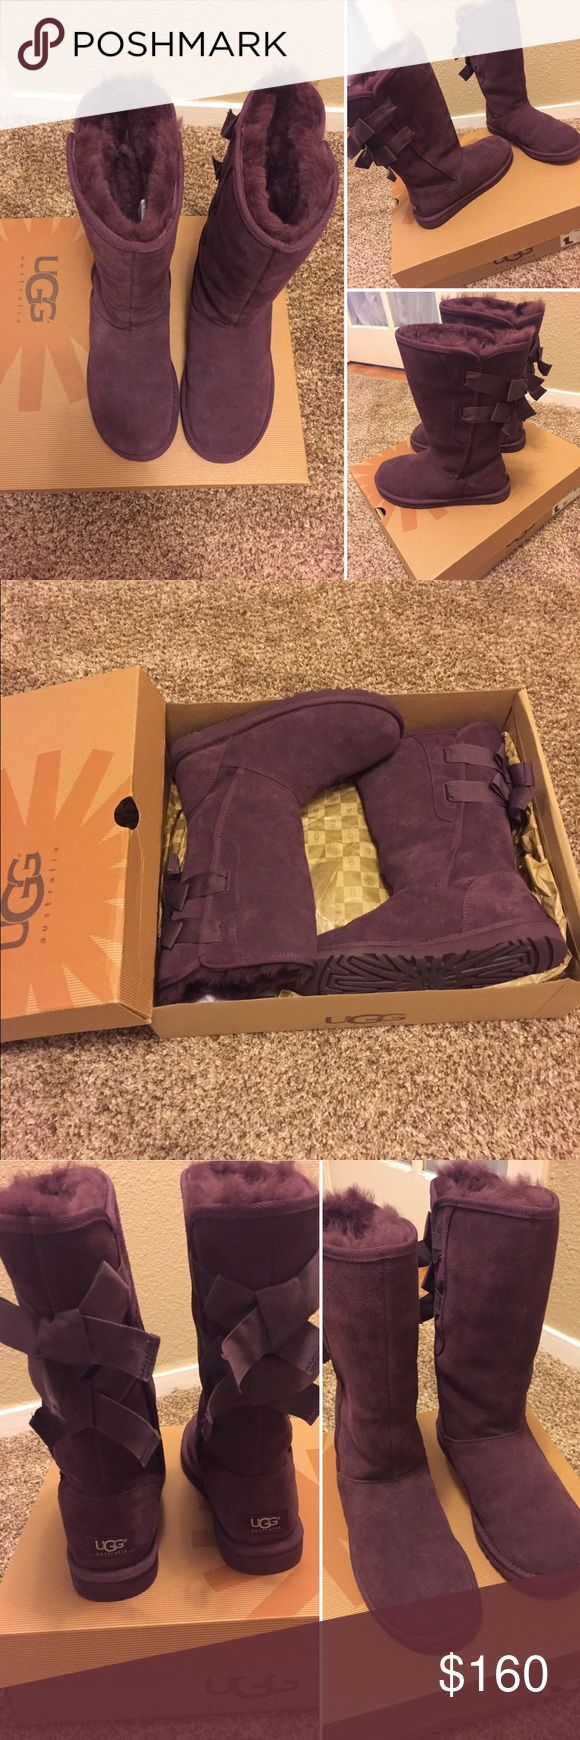 Ugg Everleigh Port Purple Women Boots US6 AUTHENTIC! Used once only. Paid $209. Selling for $160. I'm normally size 7 but size 6 fits perfectly. Comes with the original box. UGG Shoes Winter & Rain Boots